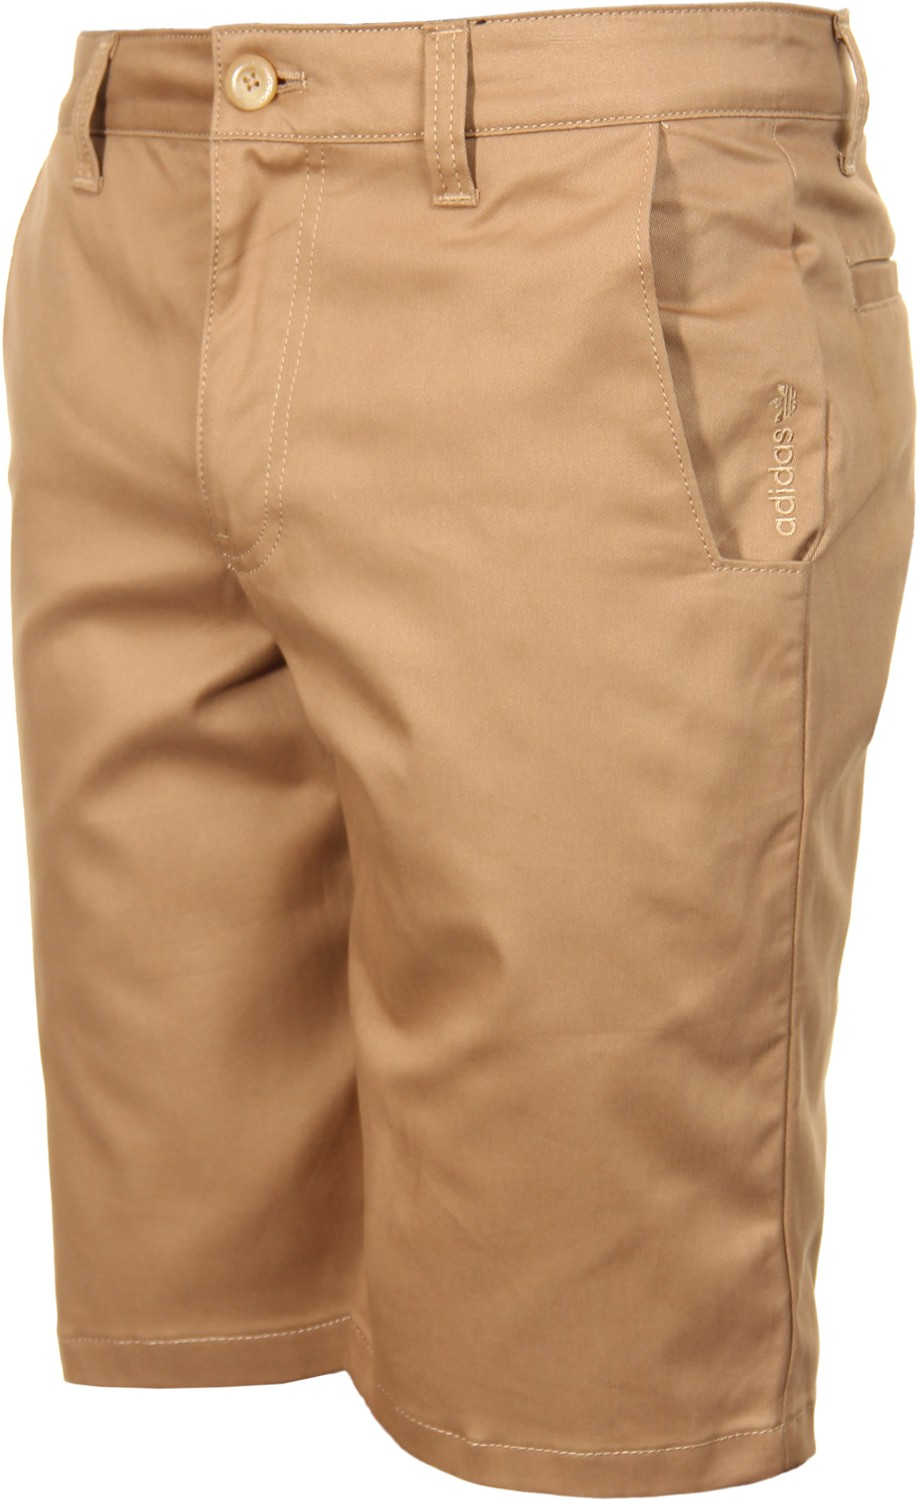 Free shipping BOTH ways on chino shorts, from our vast selection of styles. Fast delivery, and 24/7/ real-person service with a smile. Click or call